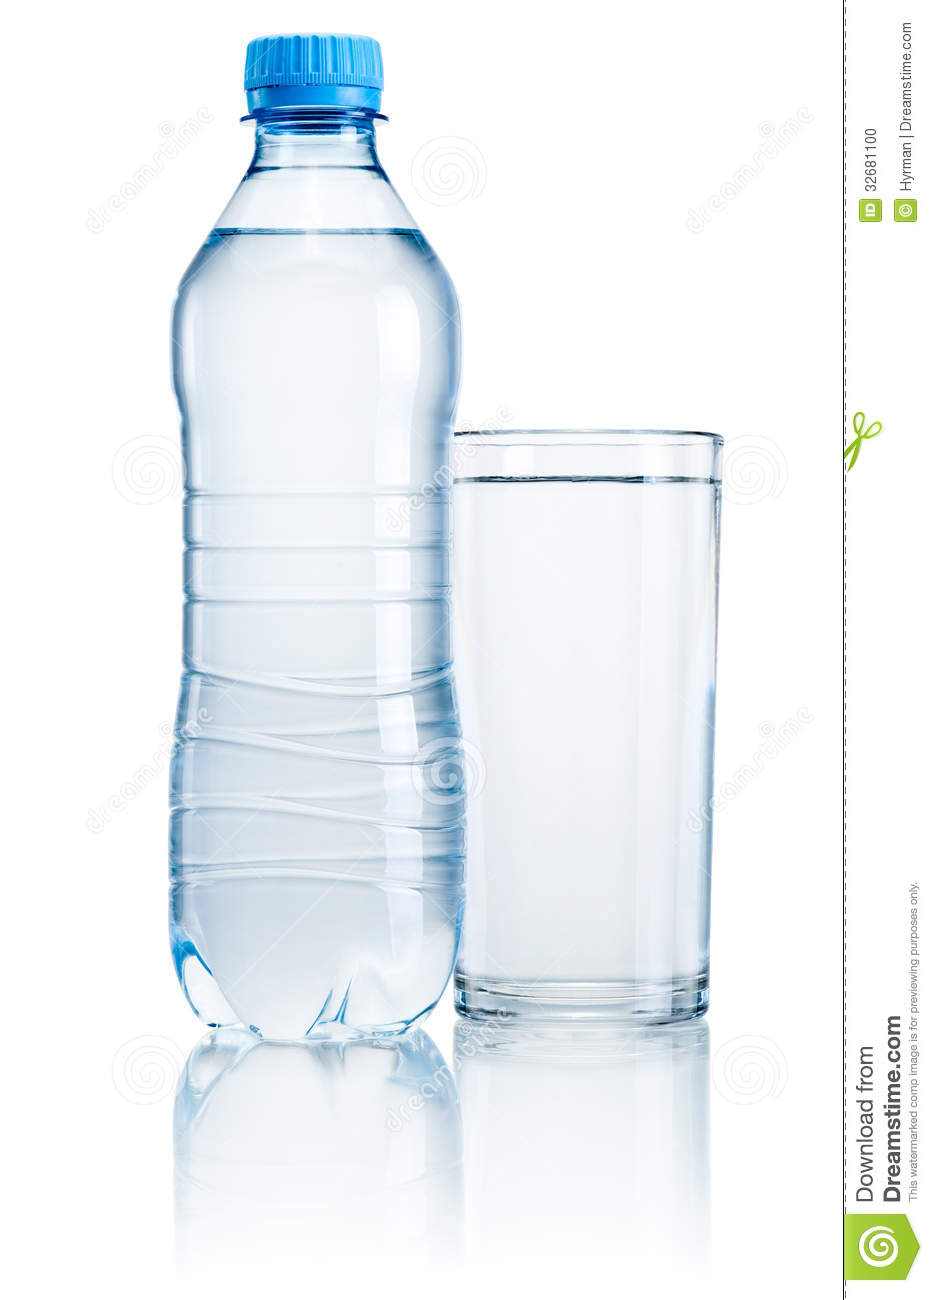 Plastic bottle and glass of drinking water isolated on white background